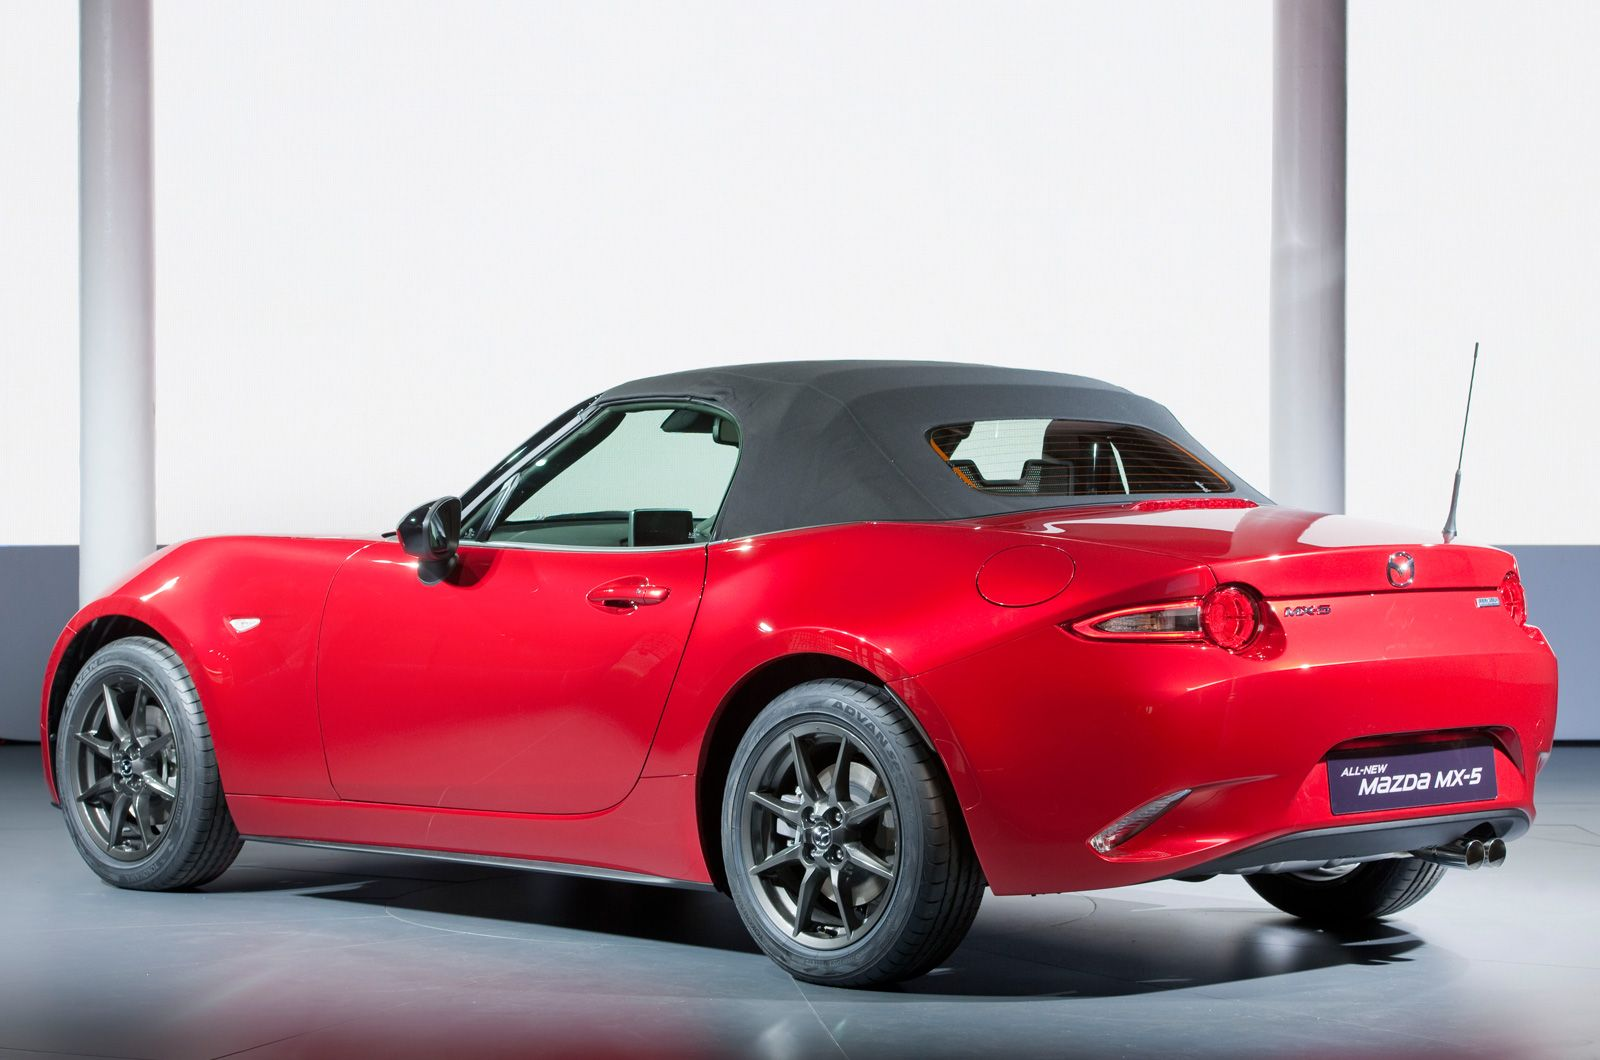 2015 Mazda MX5 Prices, pictures, engines and new Sport